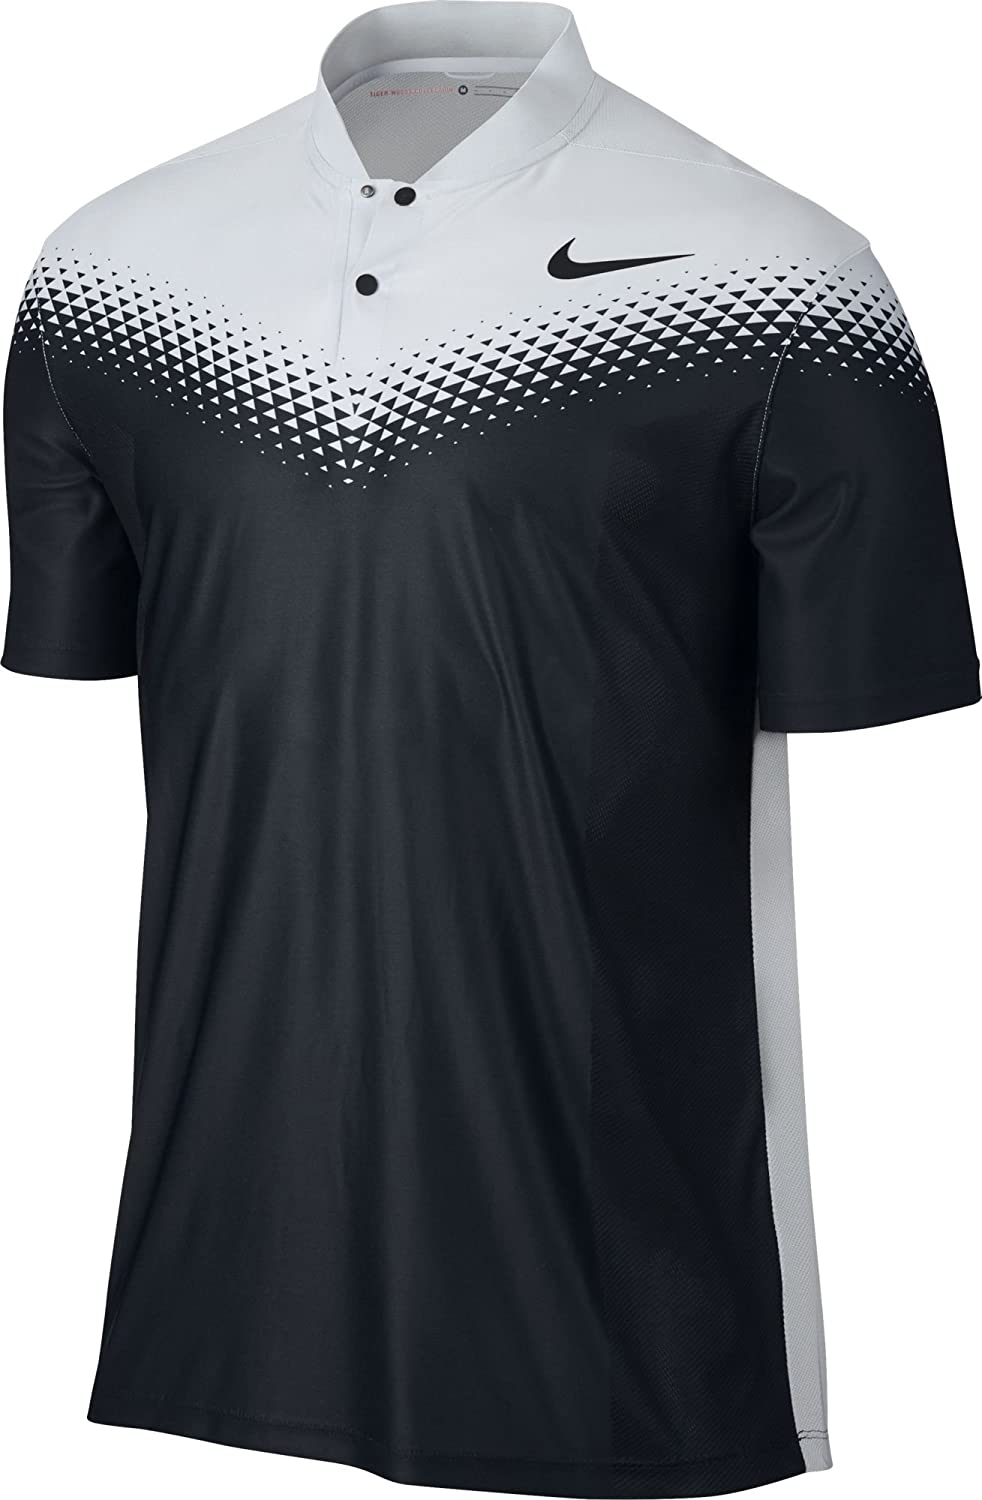 Nike Golf Men's 2017 TW Zonal Cooling Fade Blade Polo (Black/White ,Small):  Amazon.co.uk: Sports & Outdoors